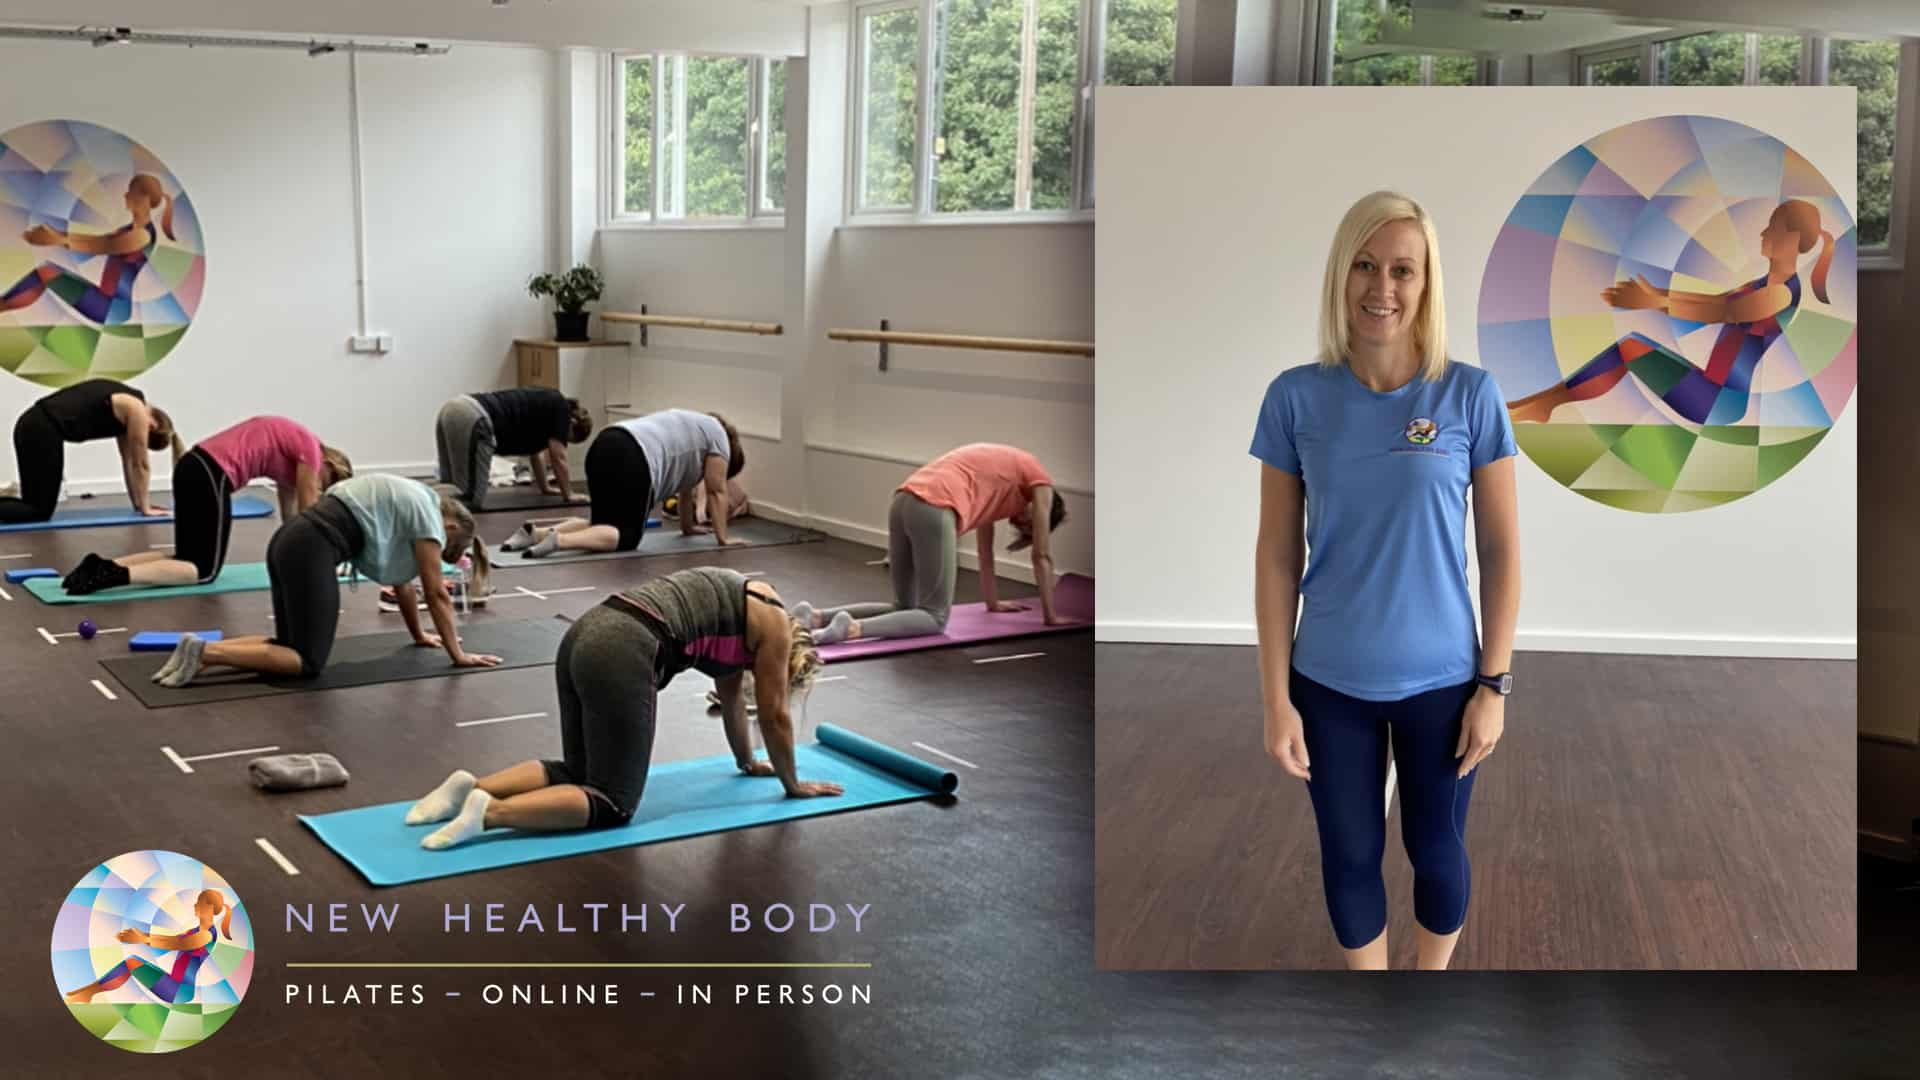 New Healthy Body News Image 3